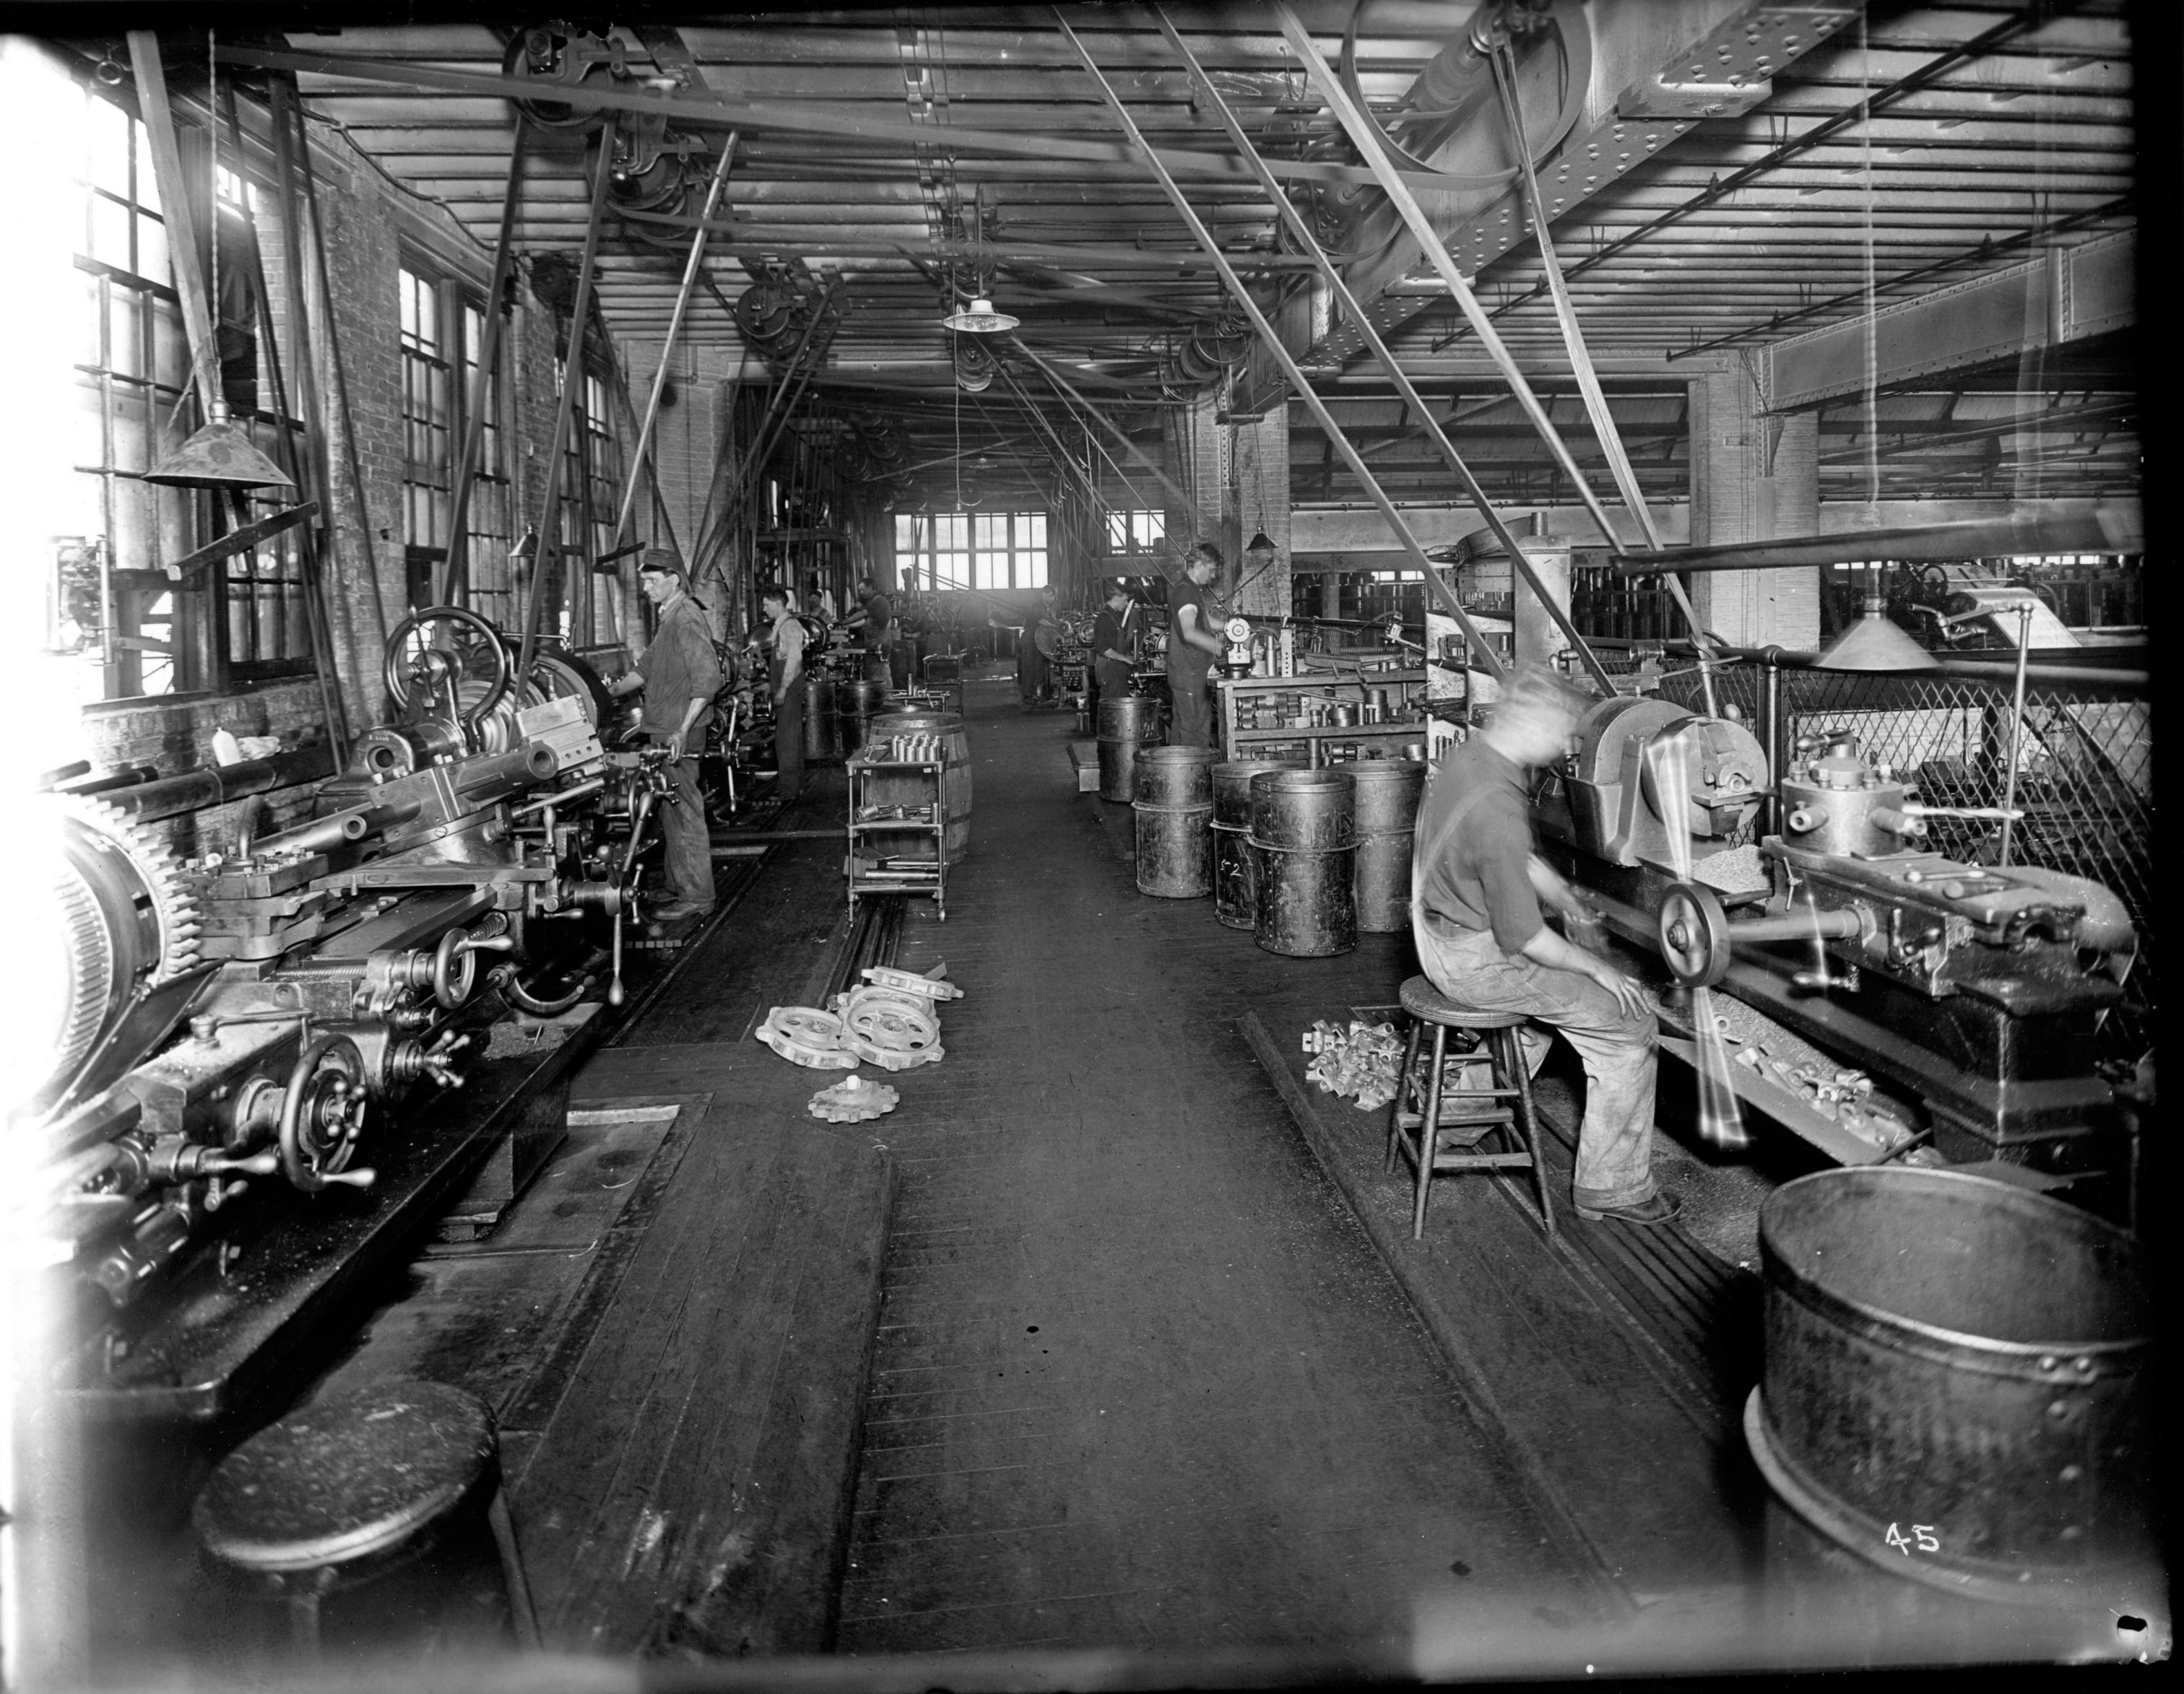 Chain Belt Company employees work at metal lathes. Finished parts and gears are stacked behind the men.